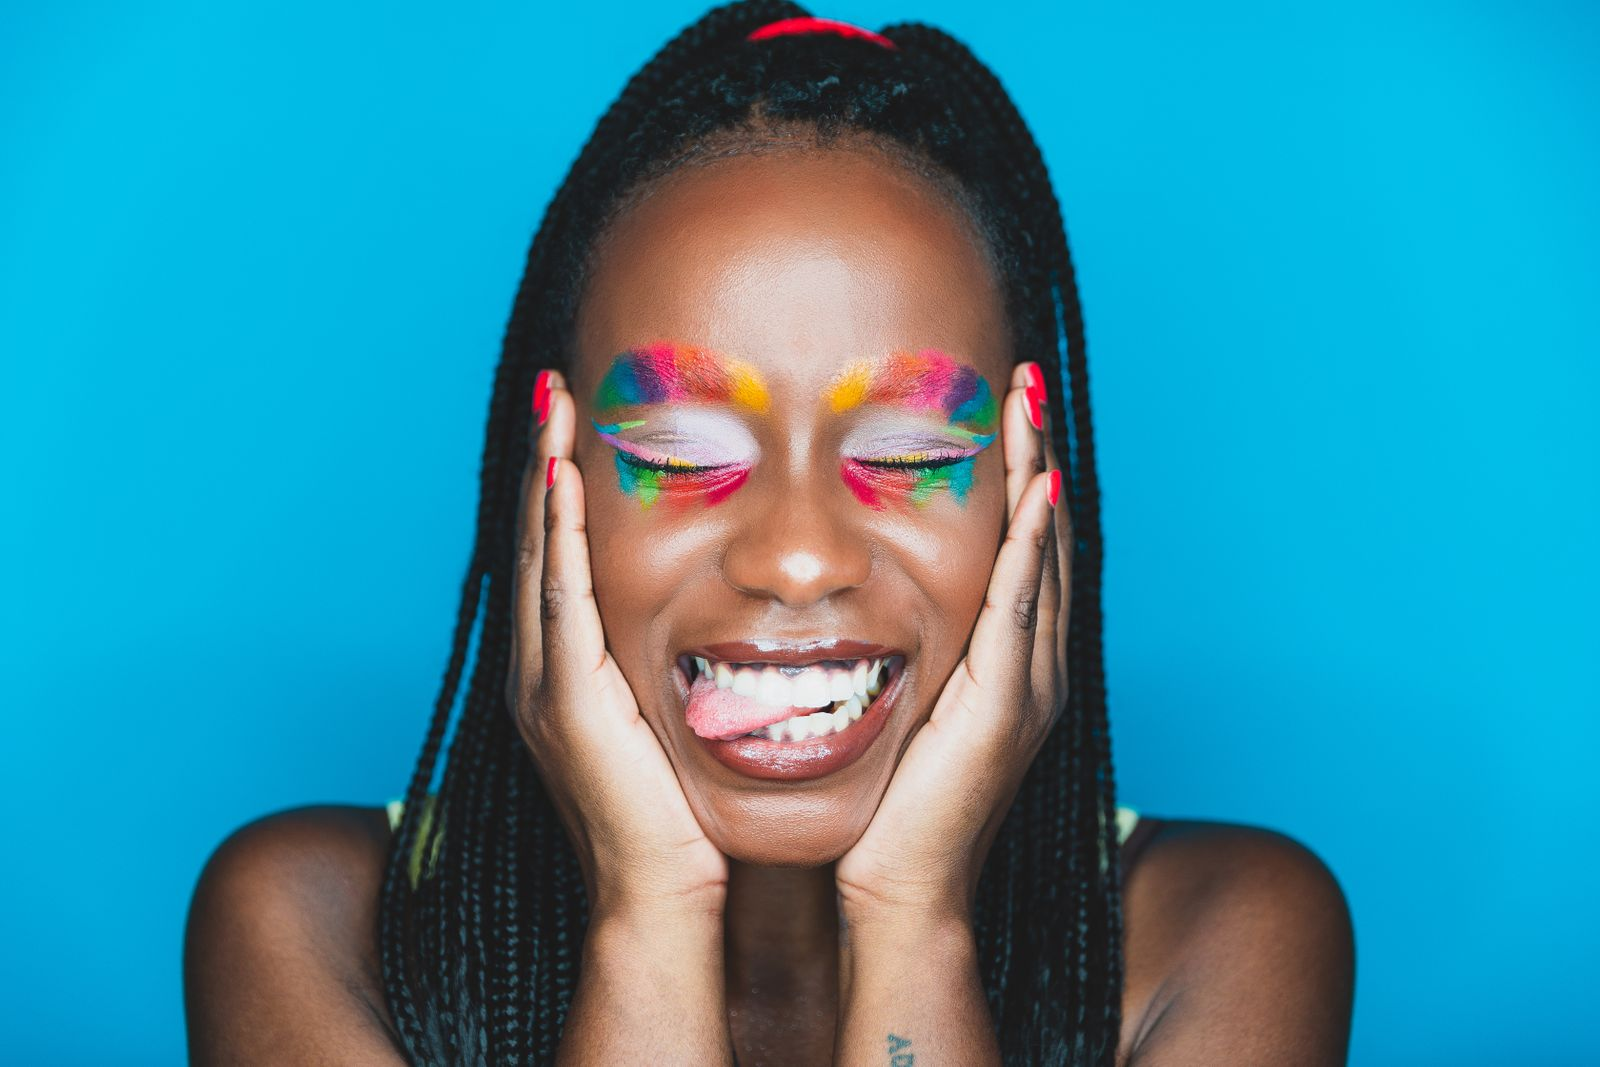 Smiling young woman posing with a rainbow colored makeup